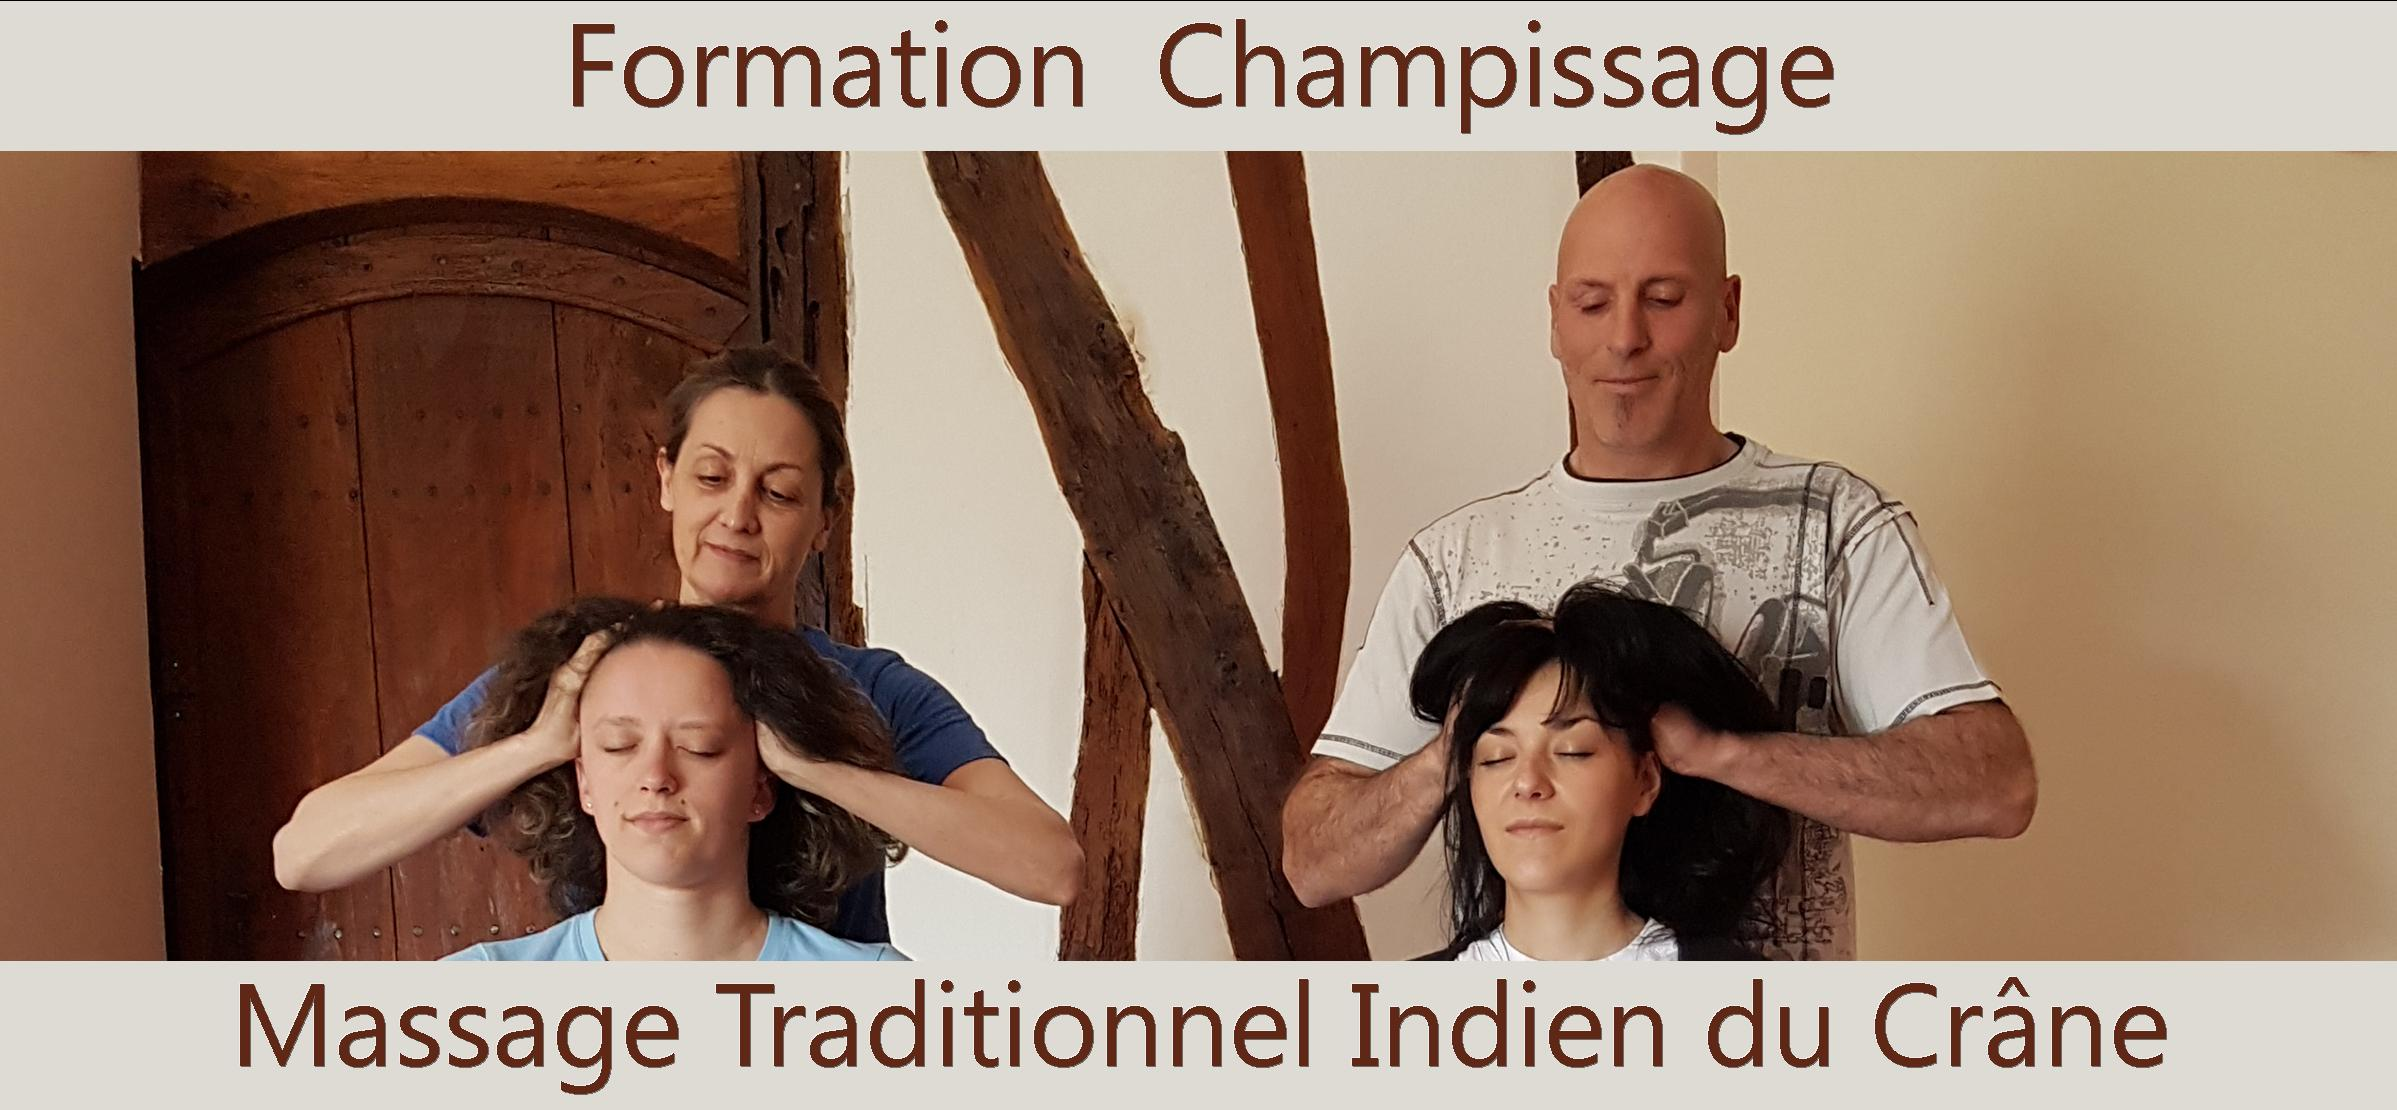 Massage Traditionnel Indien du Crâne